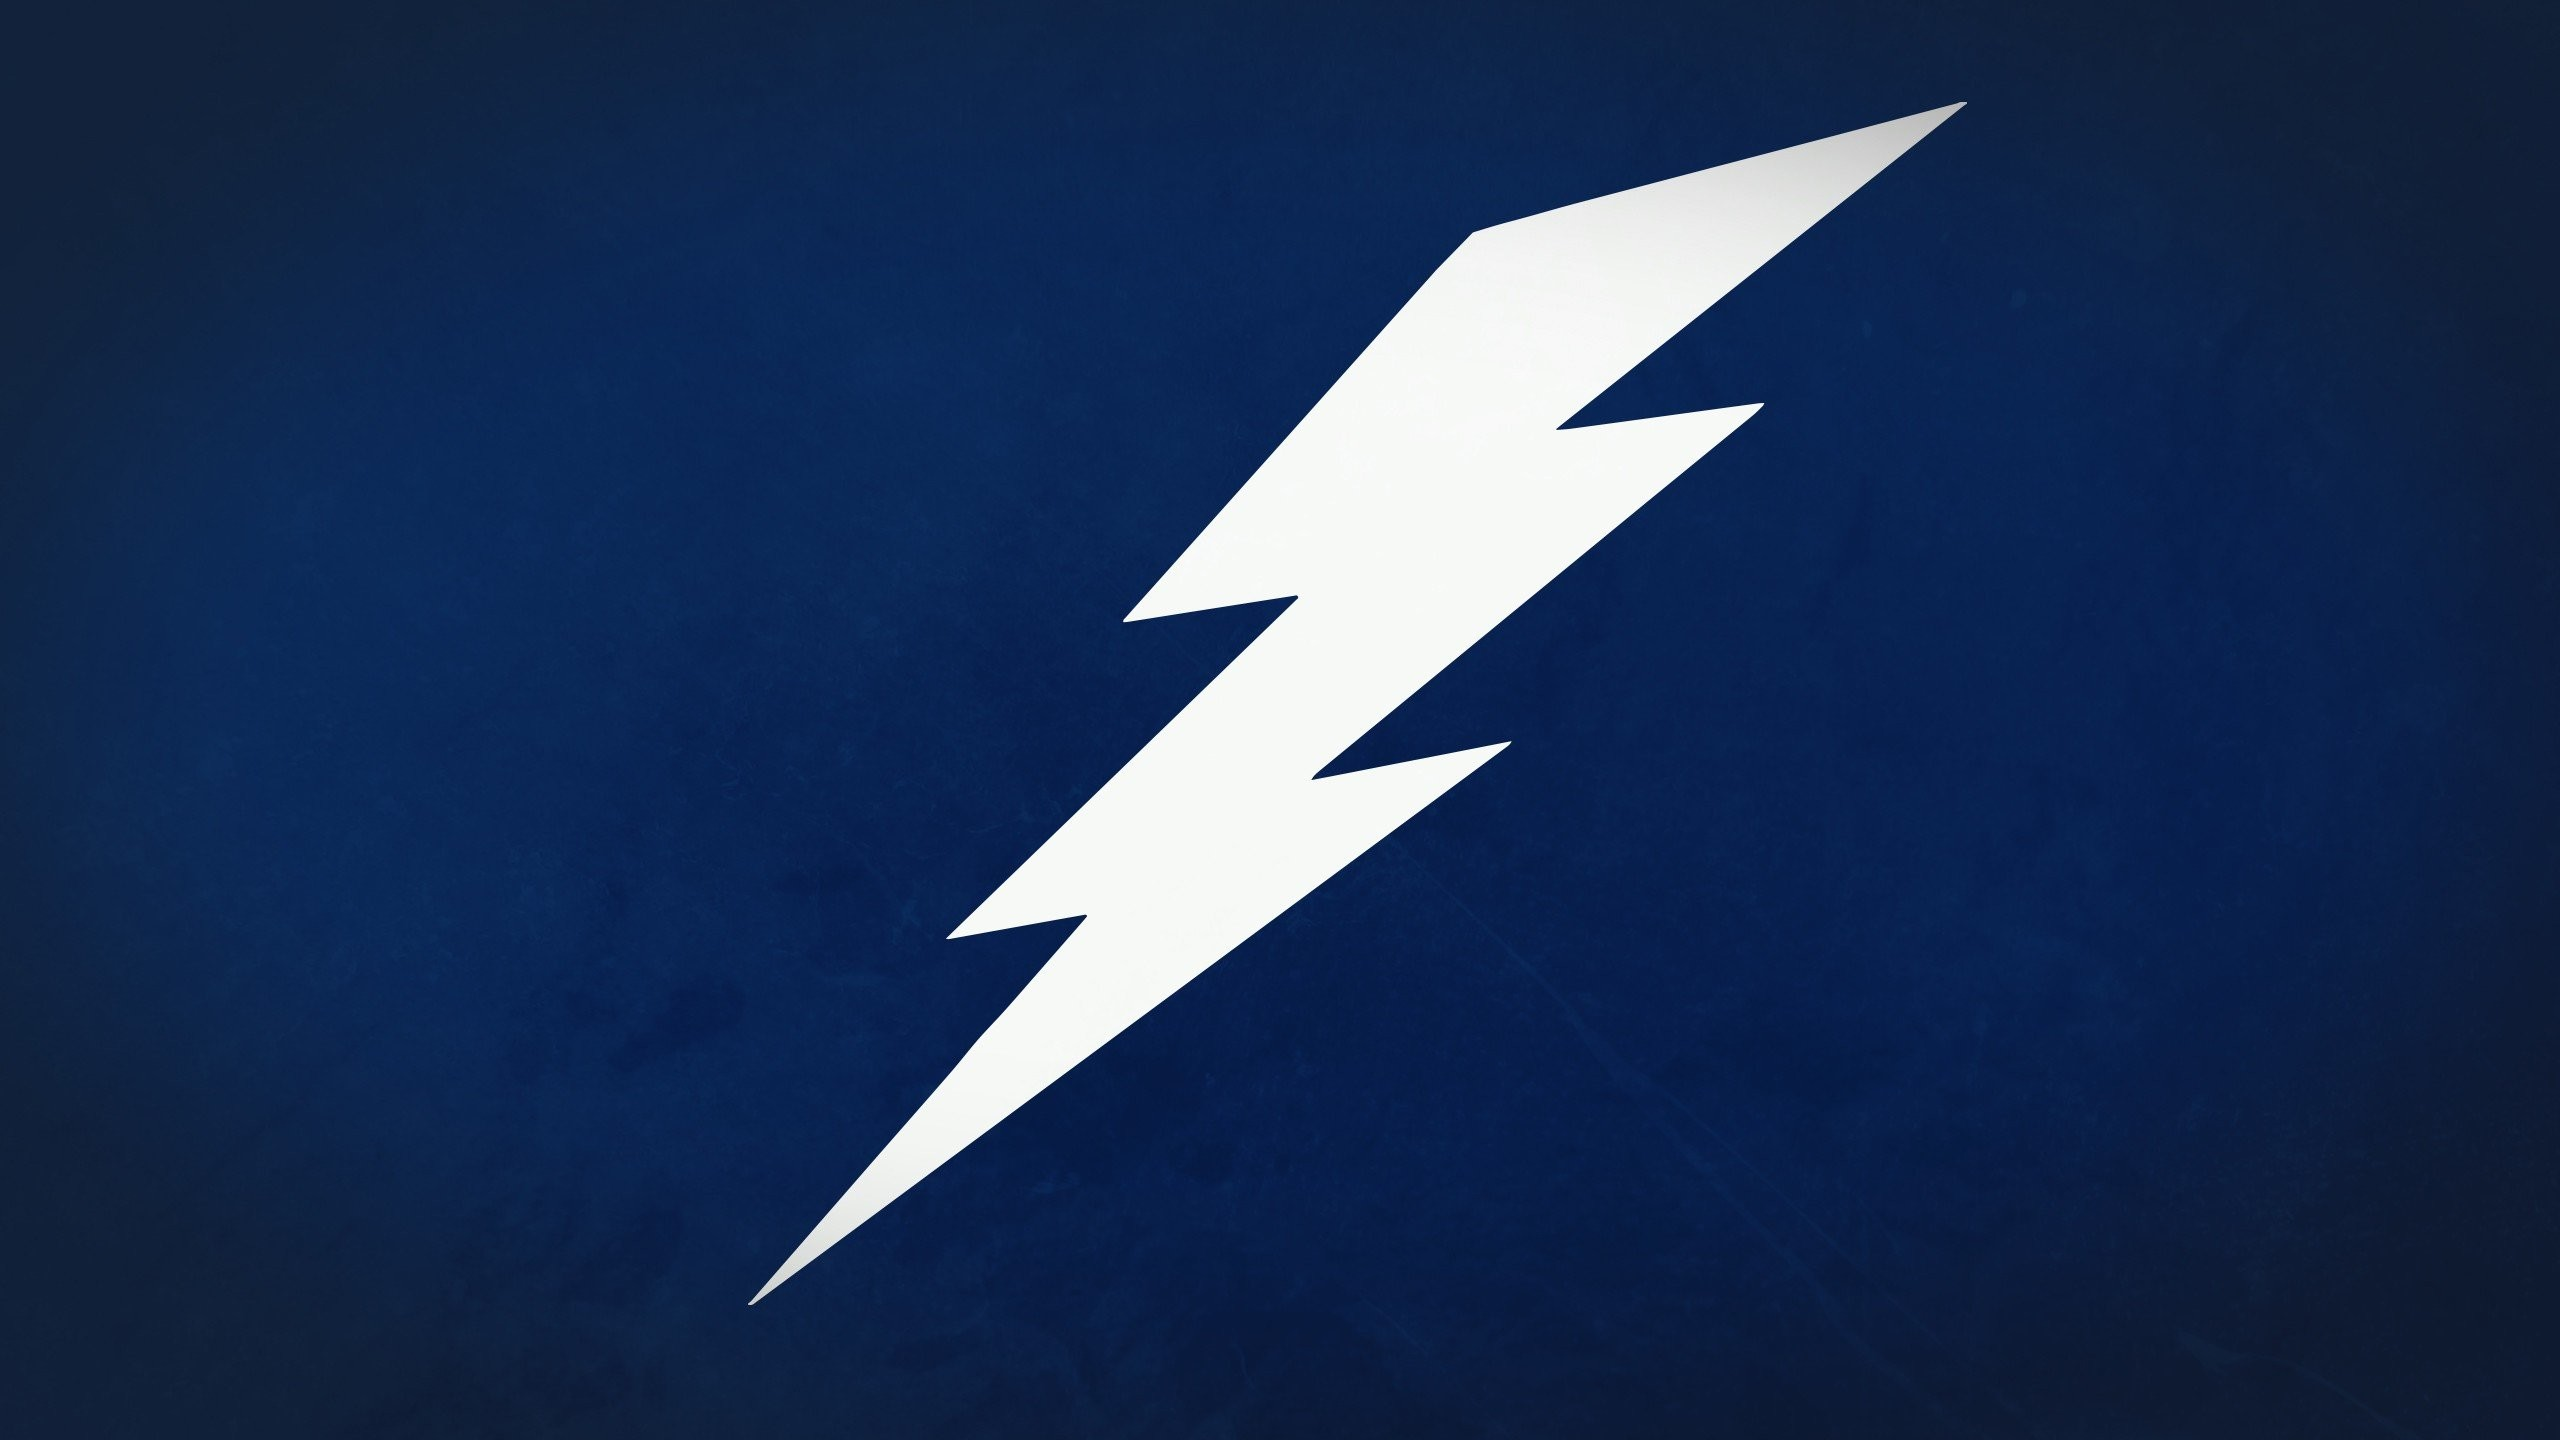 lightning bolt wallpaper ·①